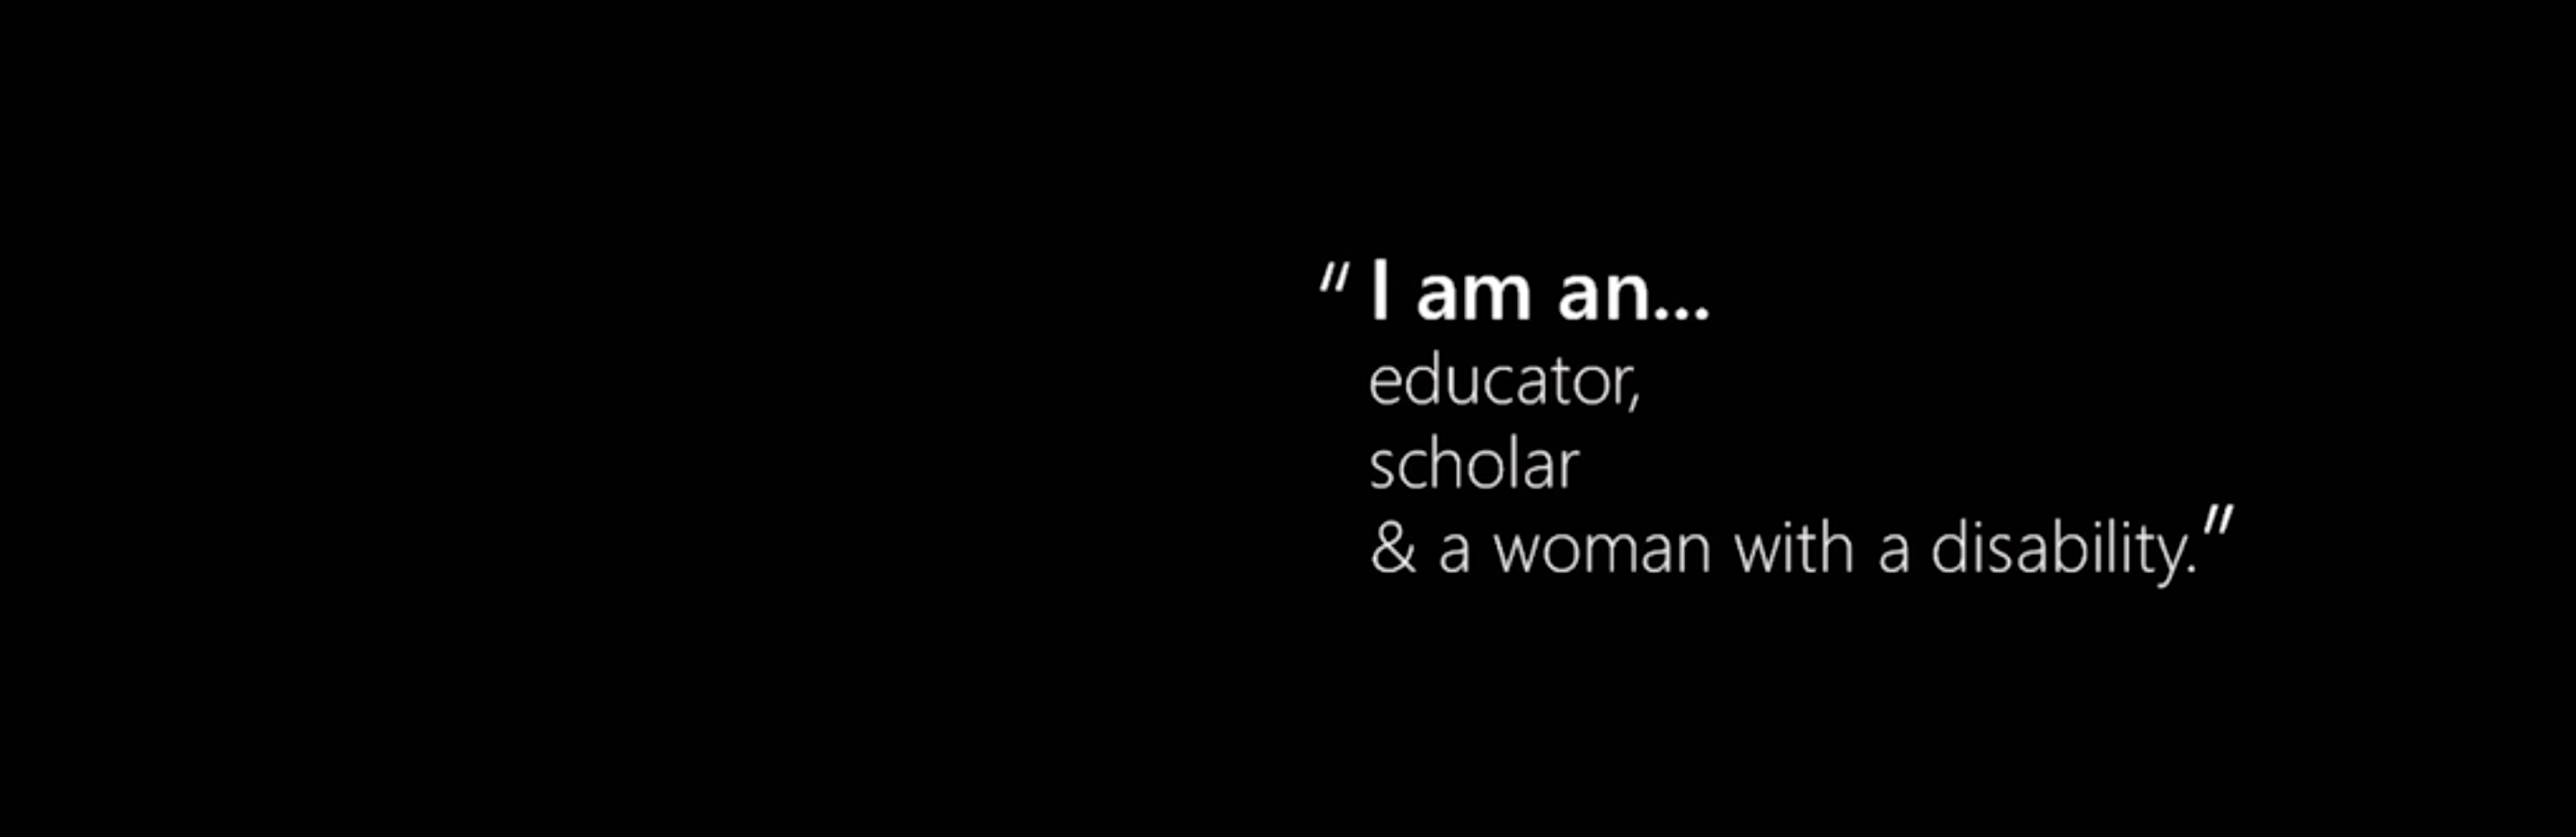 "Still from video of RGT with text that reads ""I am an educator, scholar, and a woman with a disability."""